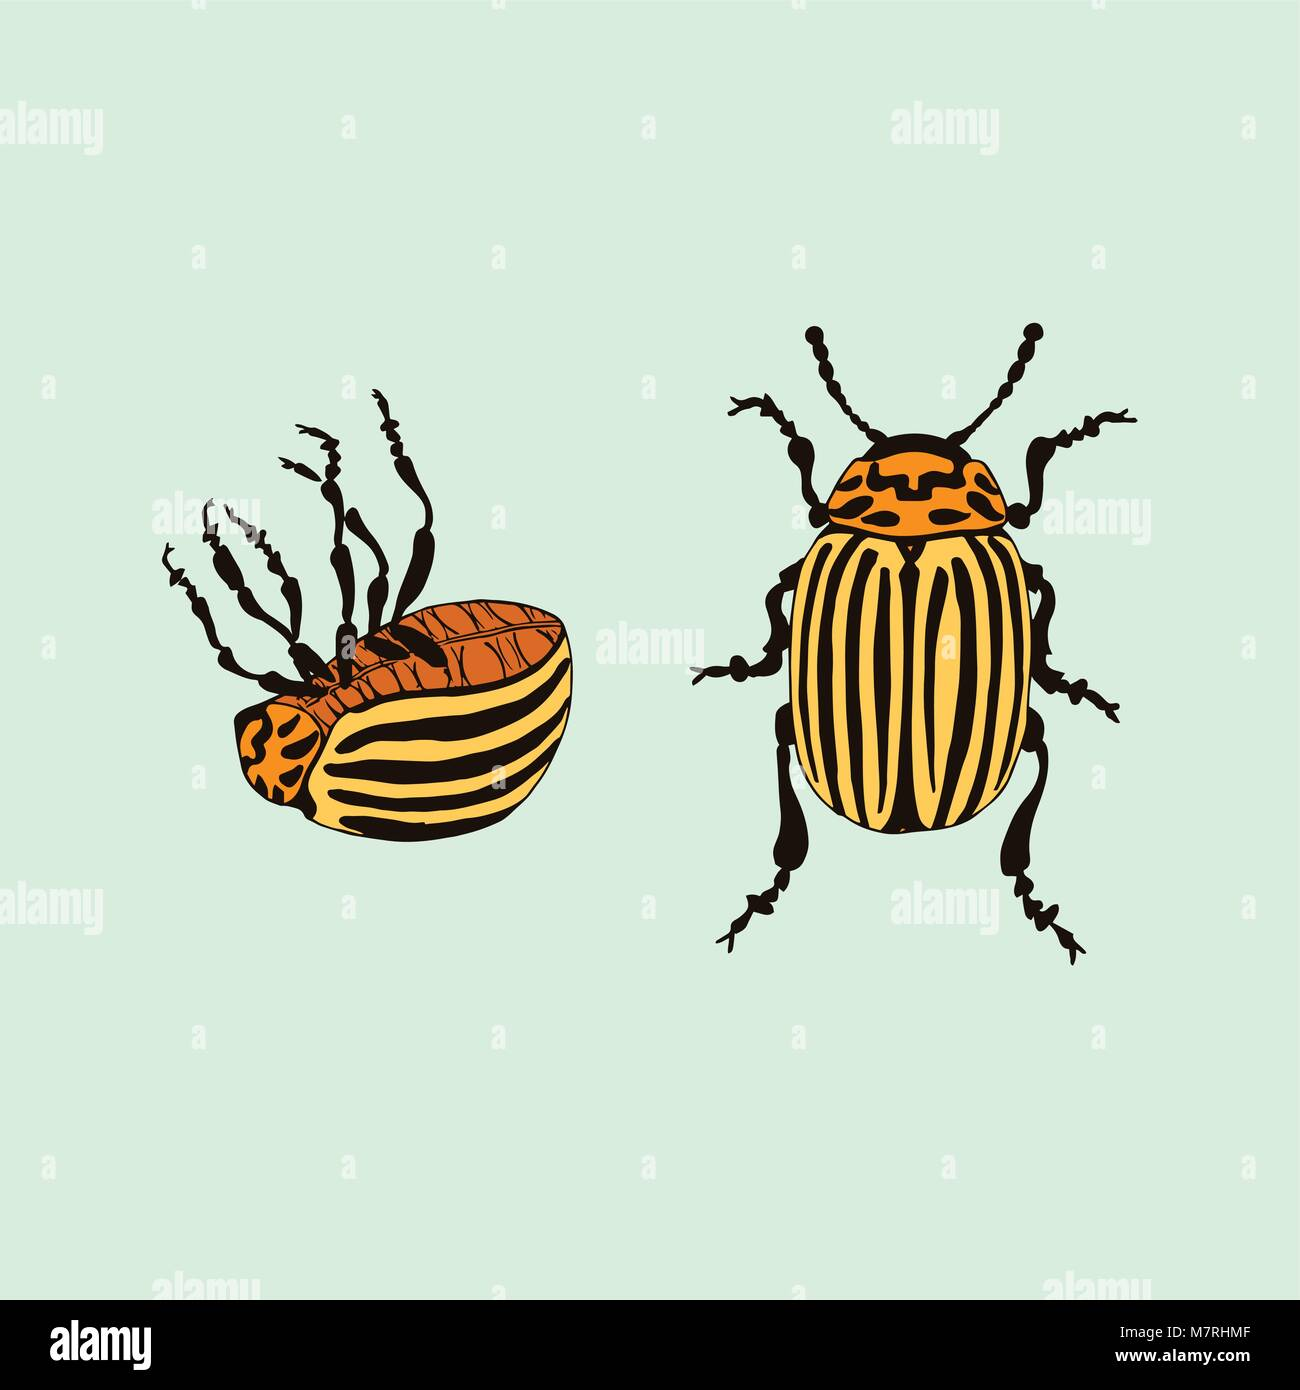 Vector Colorado potato beetle (leptinotarsa decemlineata) - Stock Vector